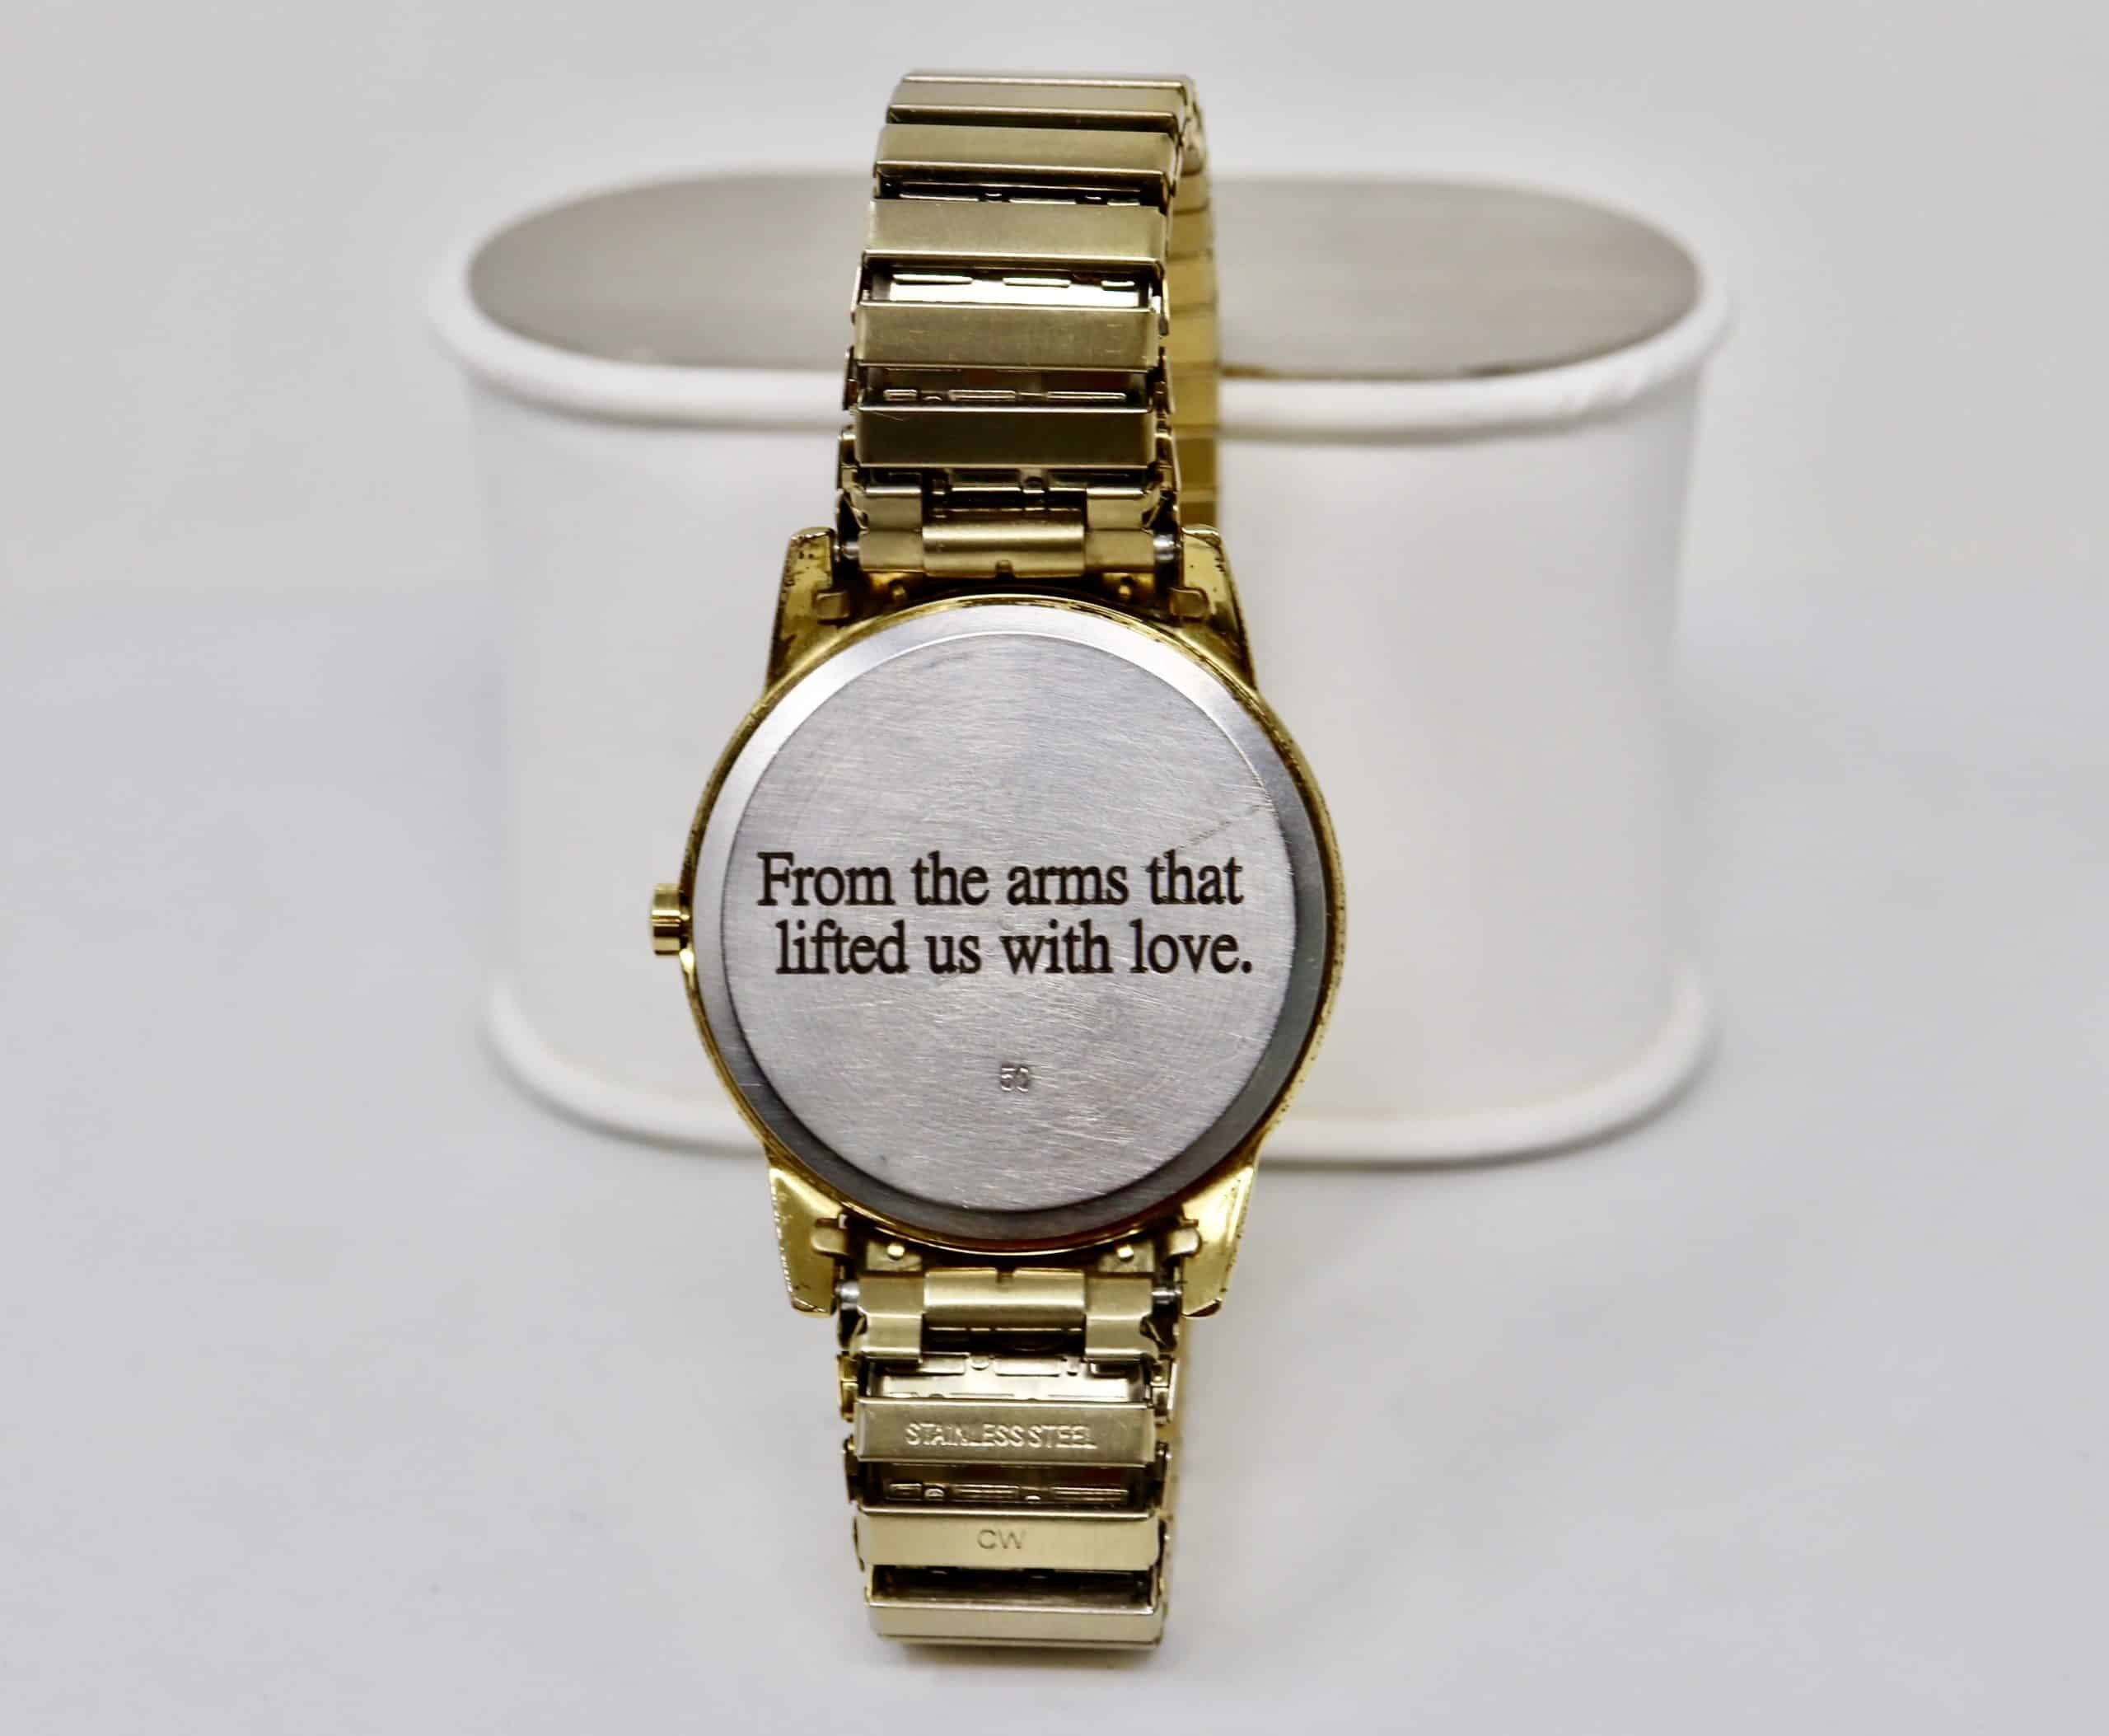 gold watch displaying back print that says from the arms that lifted us with love